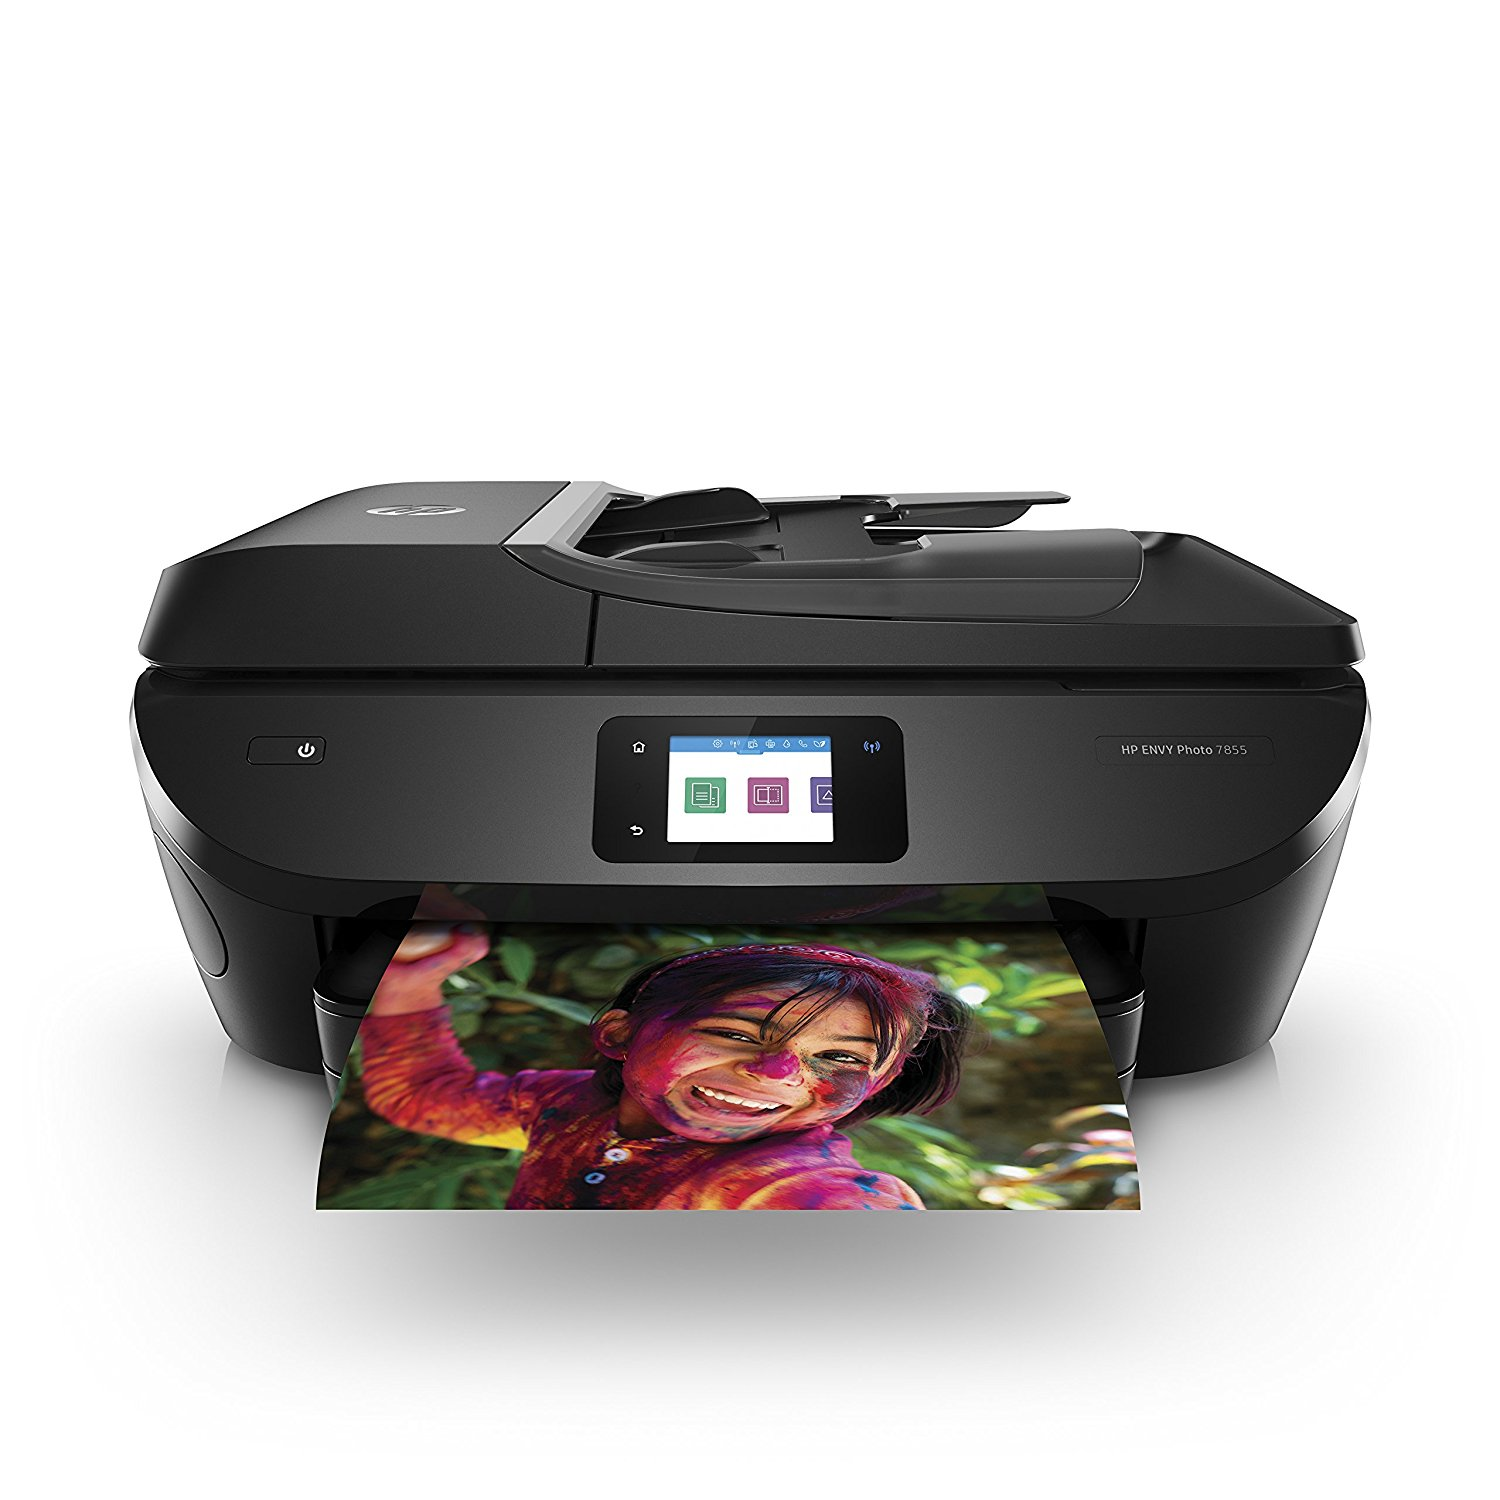 Hp Envy Photo 7855 All In One Photo Printer With Wireless Printing by Hp